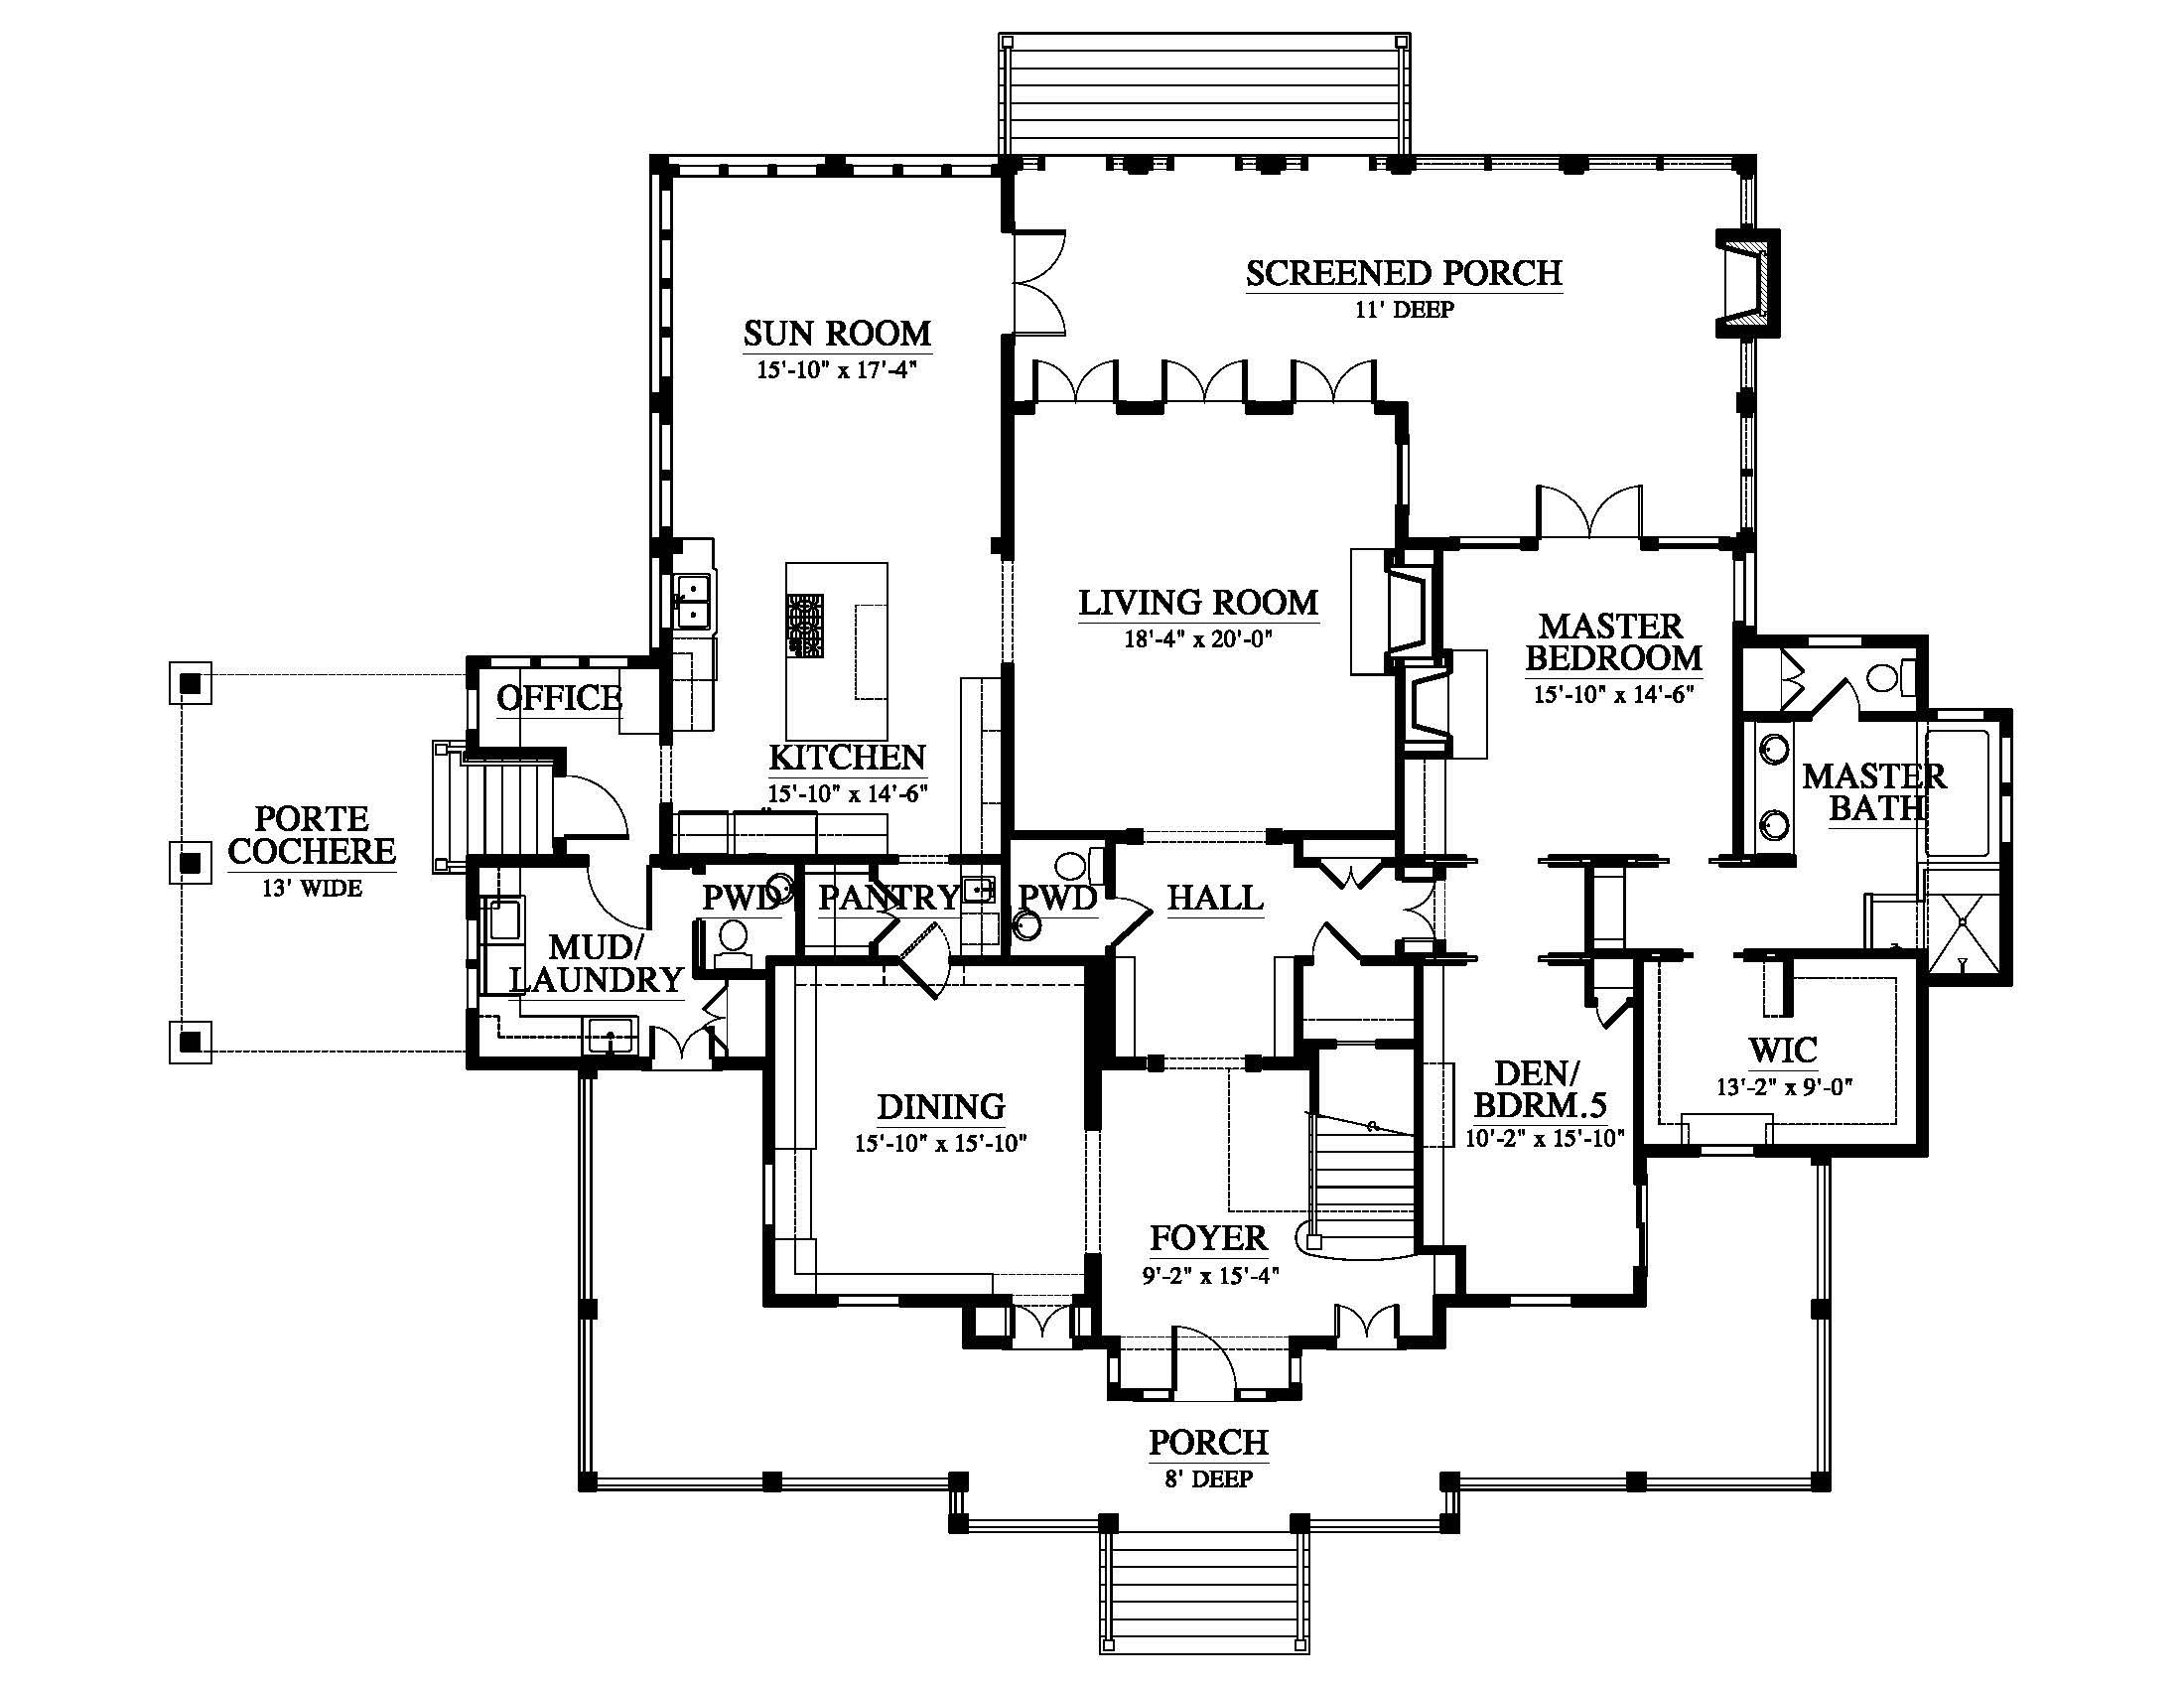 Allison Ramsey Architects | Floorplan for Net Weaver's Place - 3954 square foot house plan # C0548